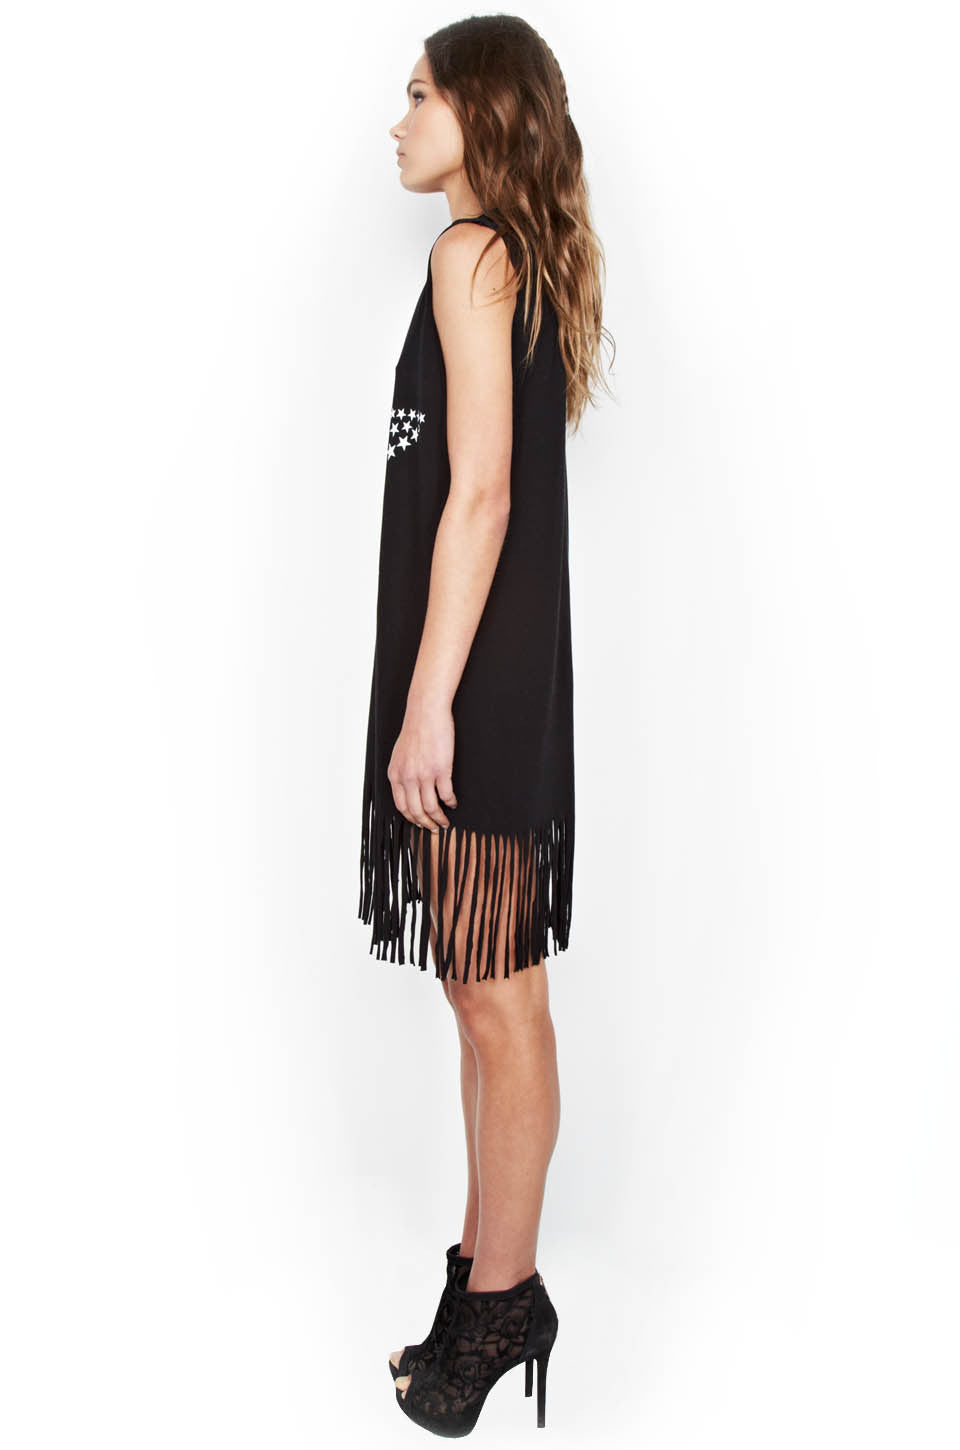 Gin Ombre Star Sleeveless Fringe Dress - Lauren Moshi - 2